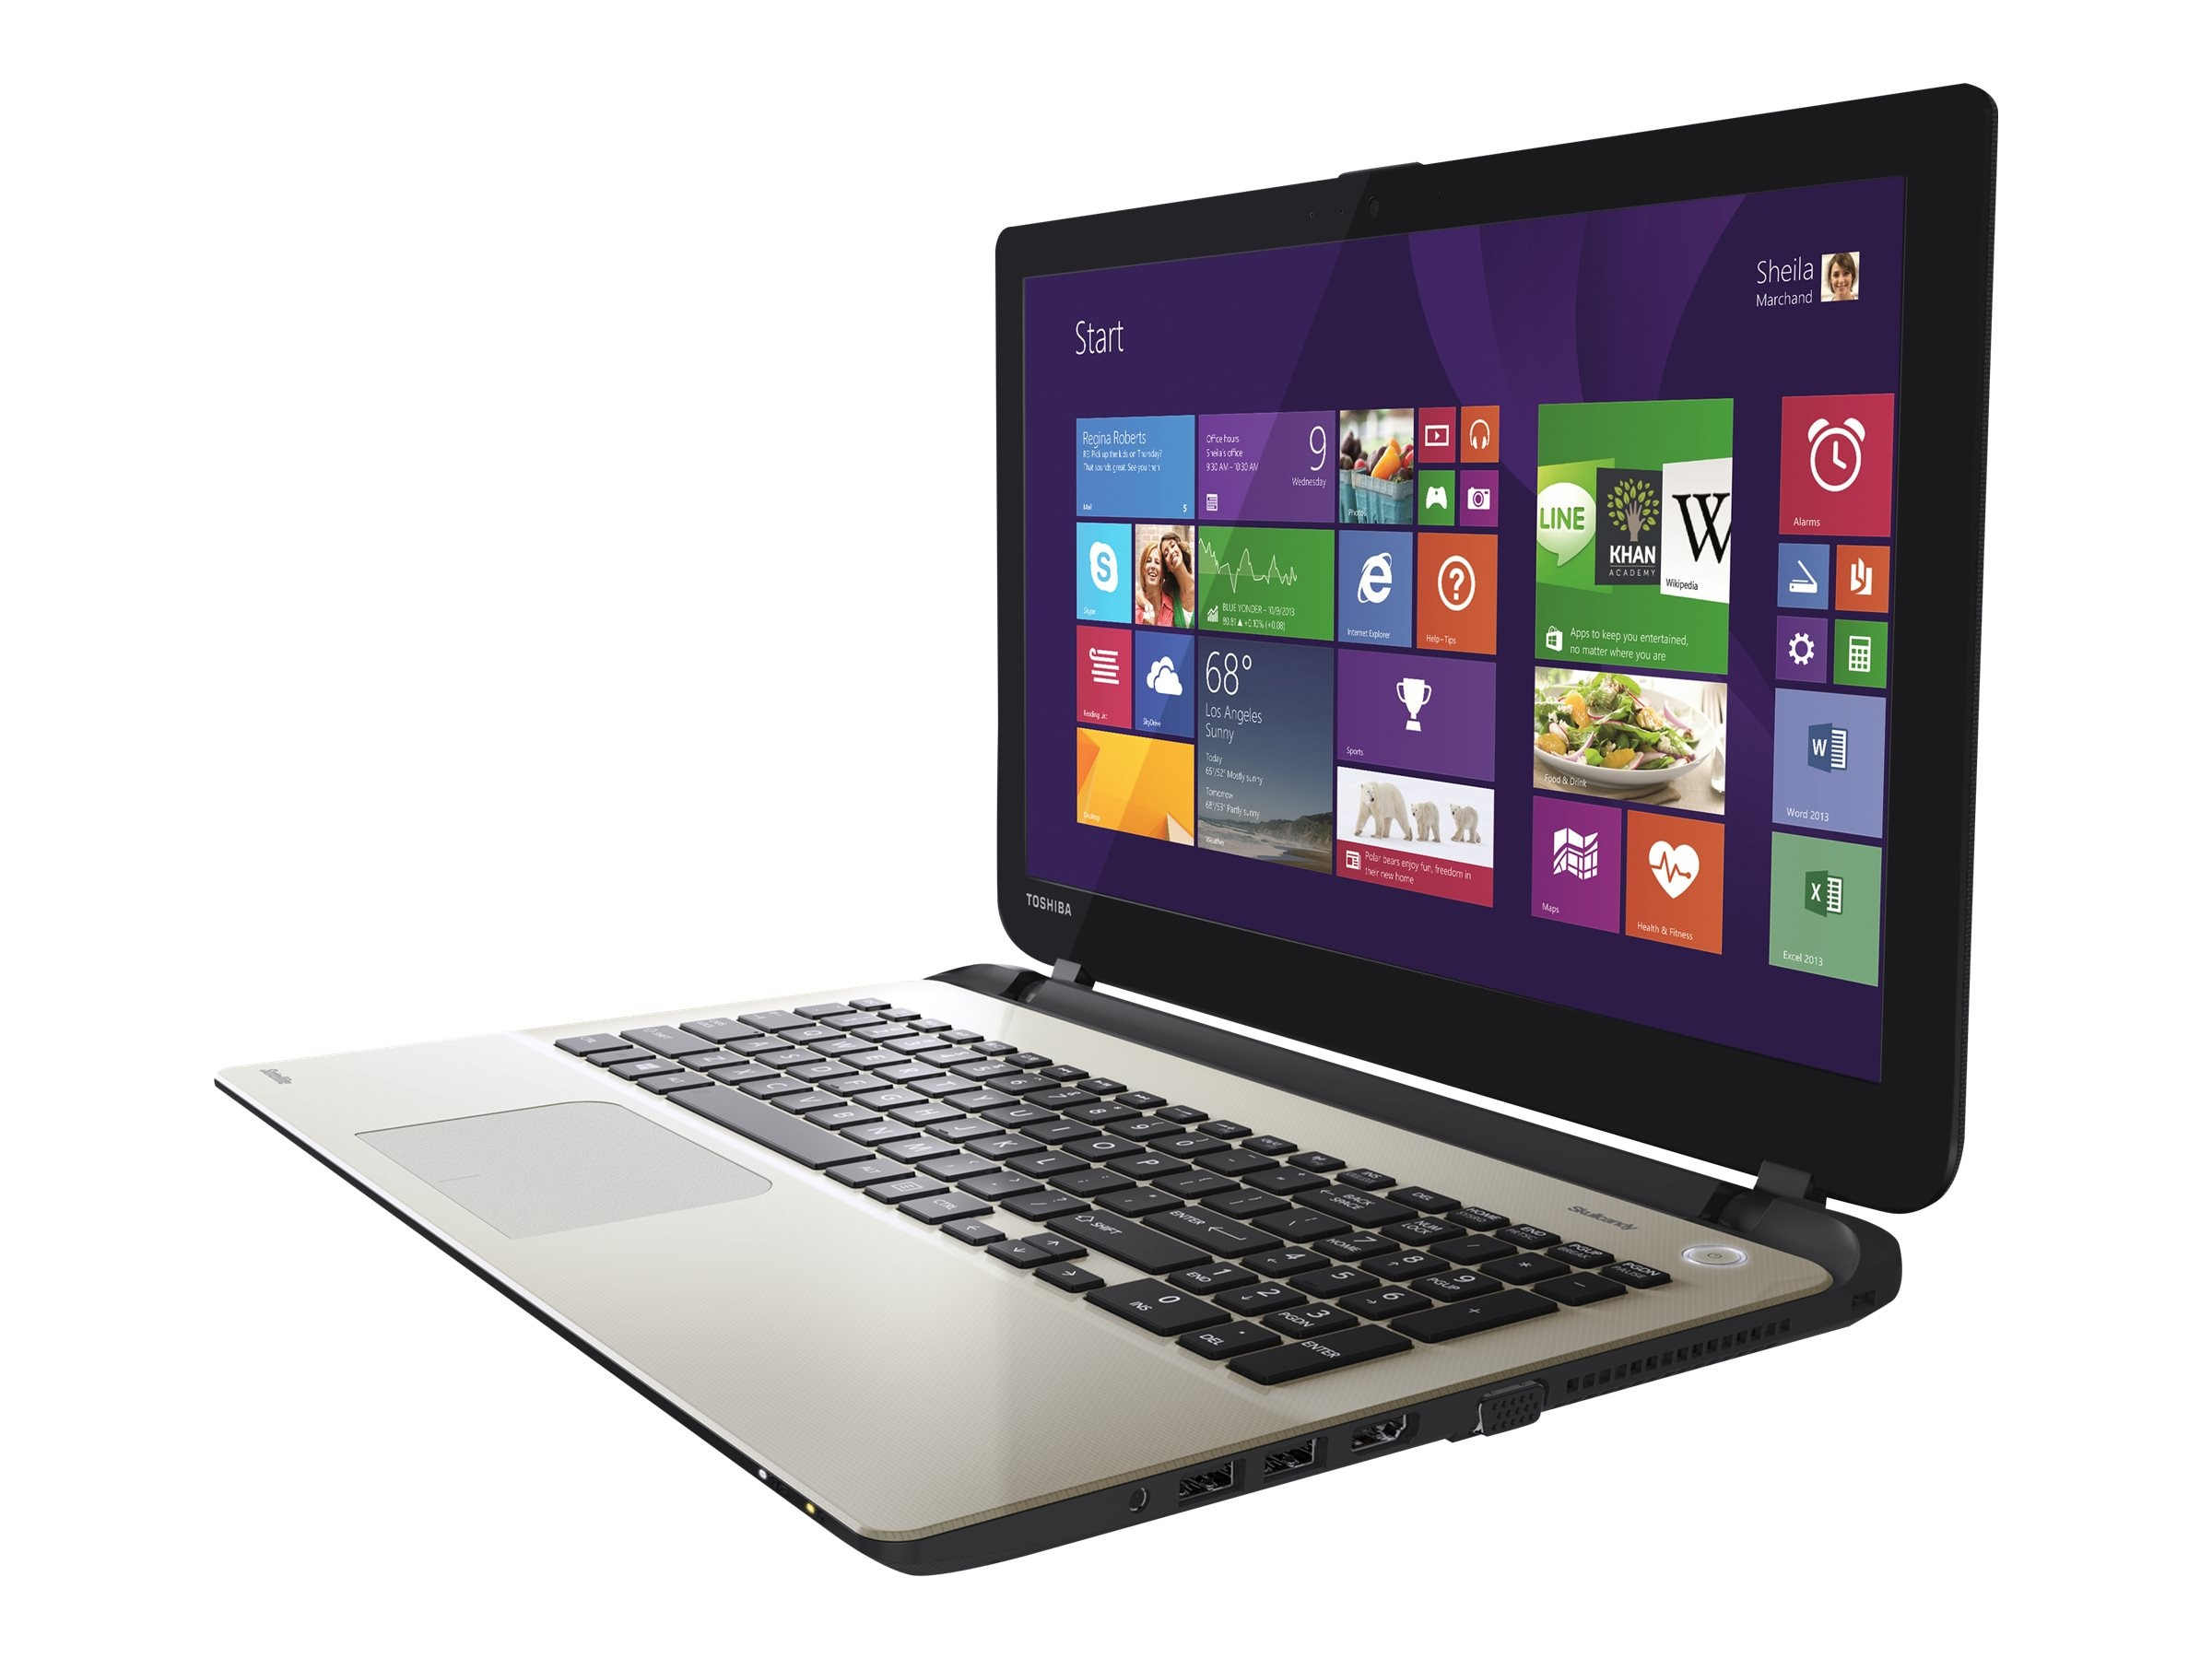 Toshiba Satellite L55-B5276 Core i5-4210U 1.7GHz 8GB 1TB DVD SM bgn NIC WC 4C 15.6 HD W8.1, PSKT4U-07T00G, 30657193, Notebooks